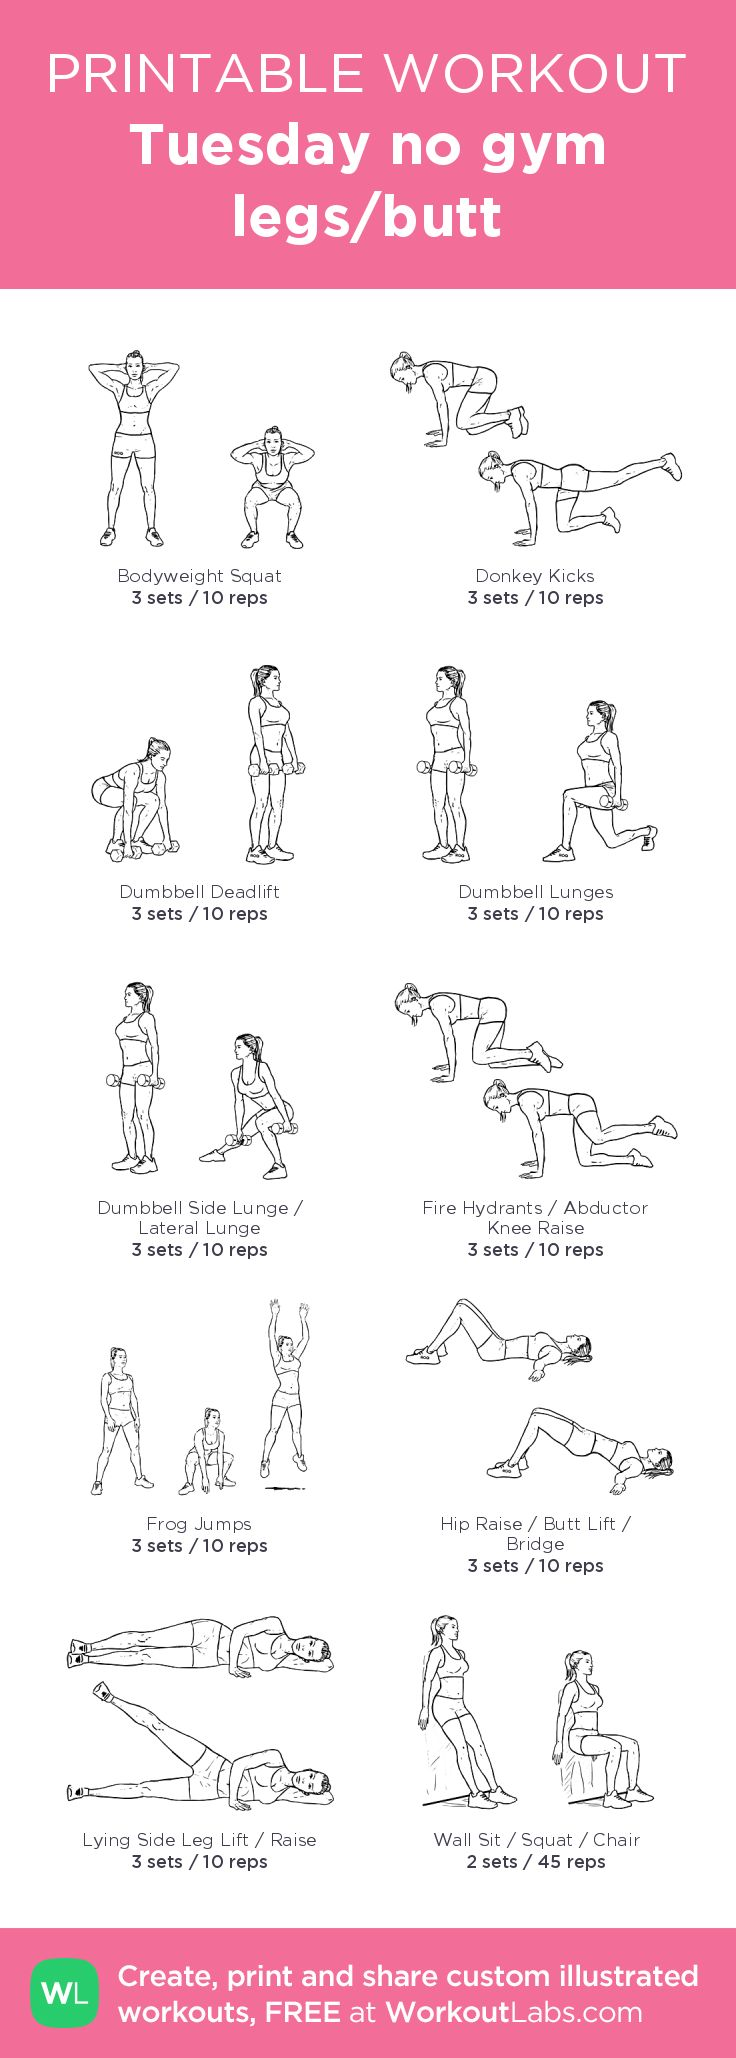 Tuesday no gym legs/butt–my custom exercise plan created at WorkoutLabs.com • Click through to download as a printable workout PDF #customworkout